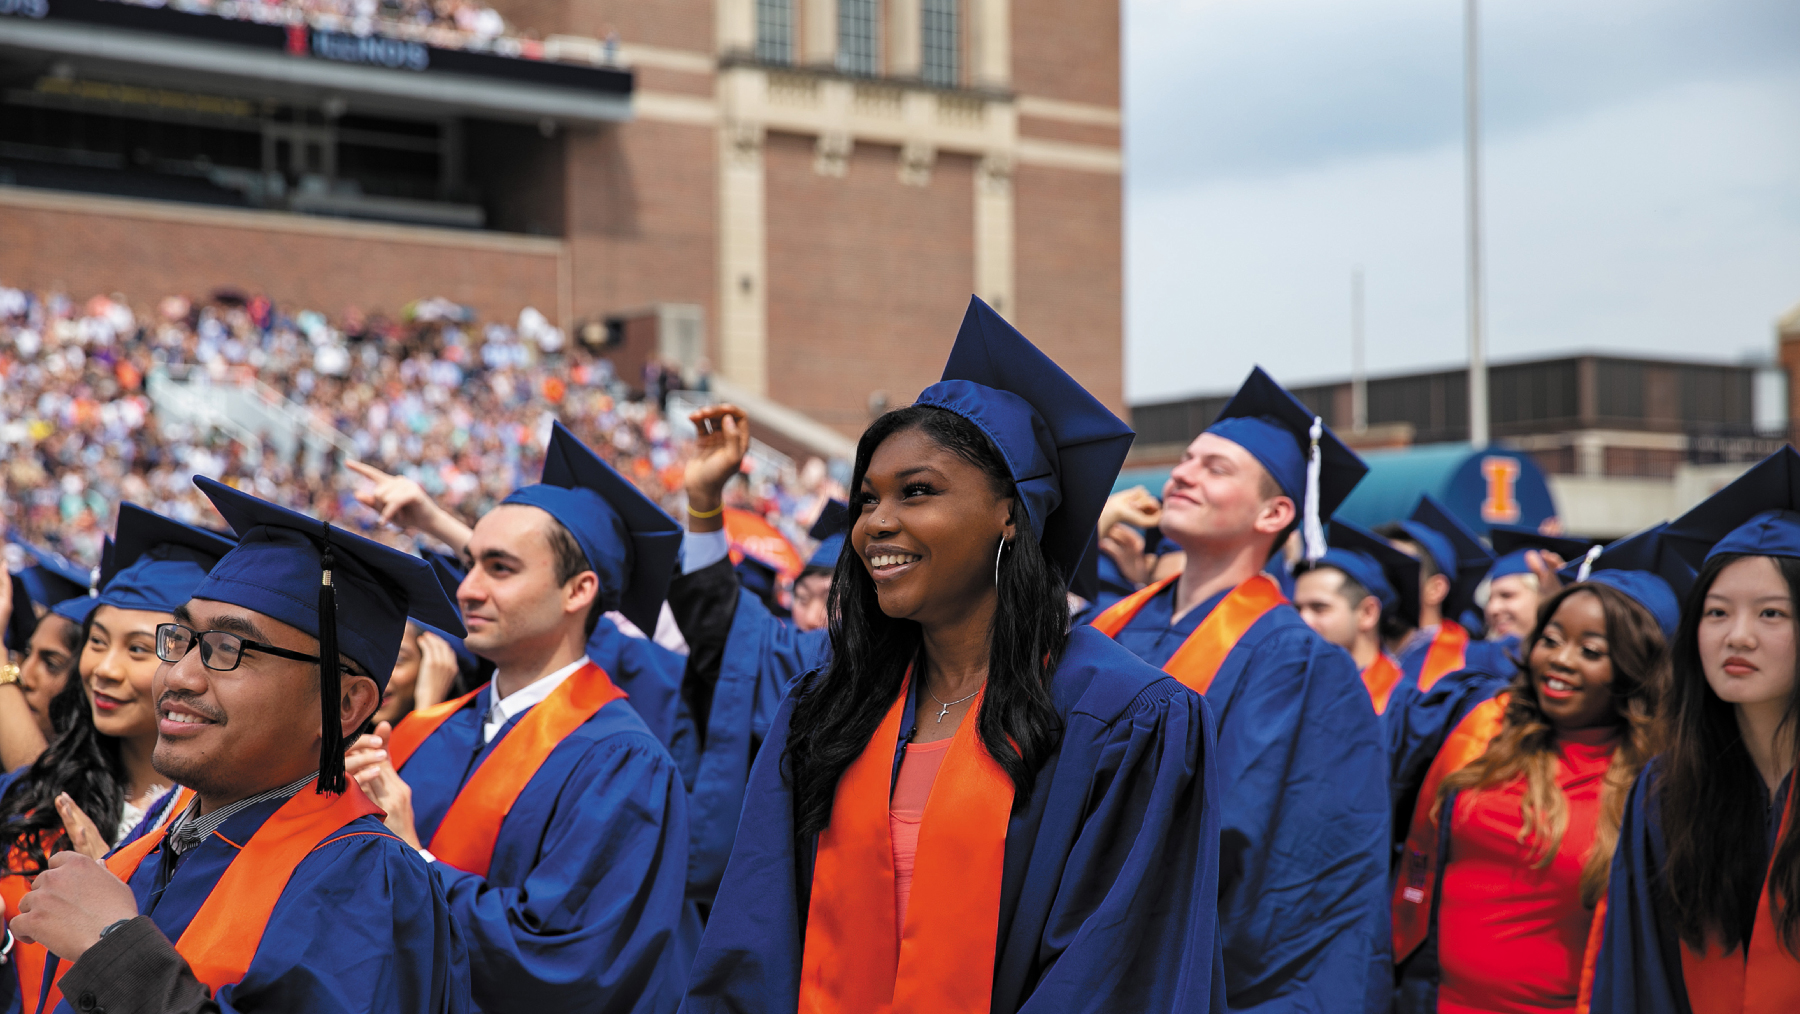 Illinois graduates in caps and gowns at 2019 Commencement. Photo by Jamie Hendrick